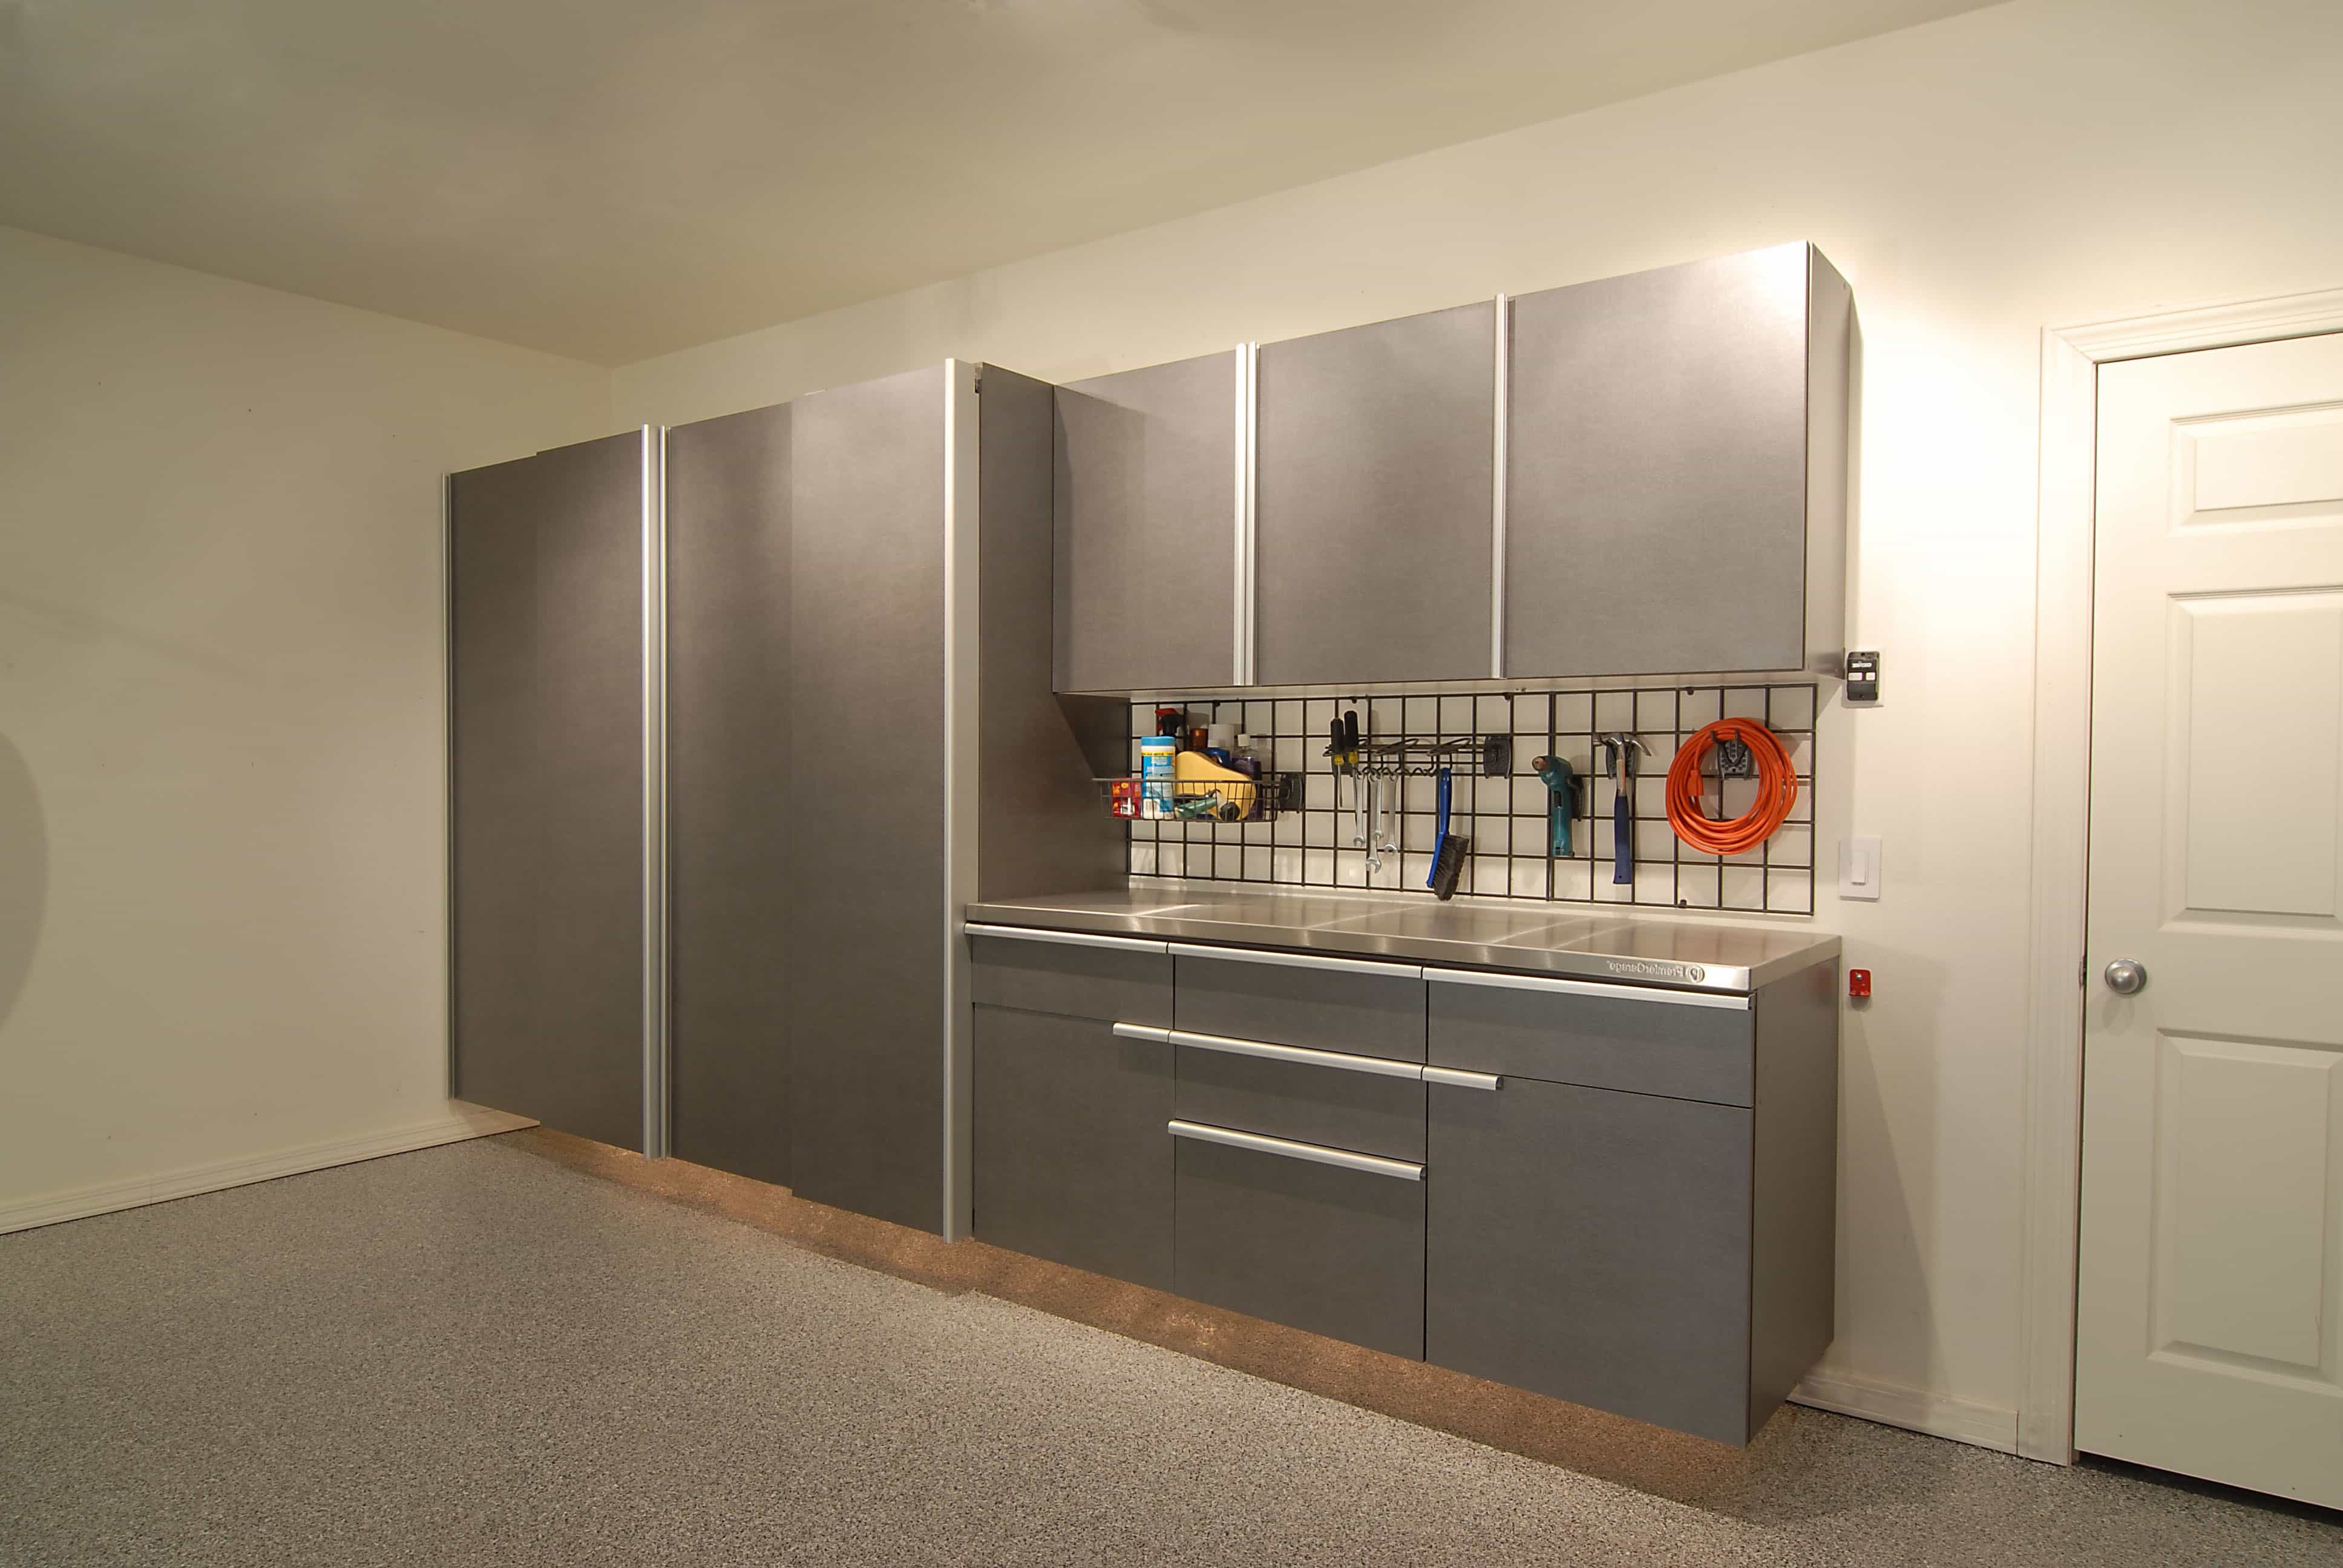 Minimalist Modern Garage Cabinets And Shelves (Image 5 of 10)